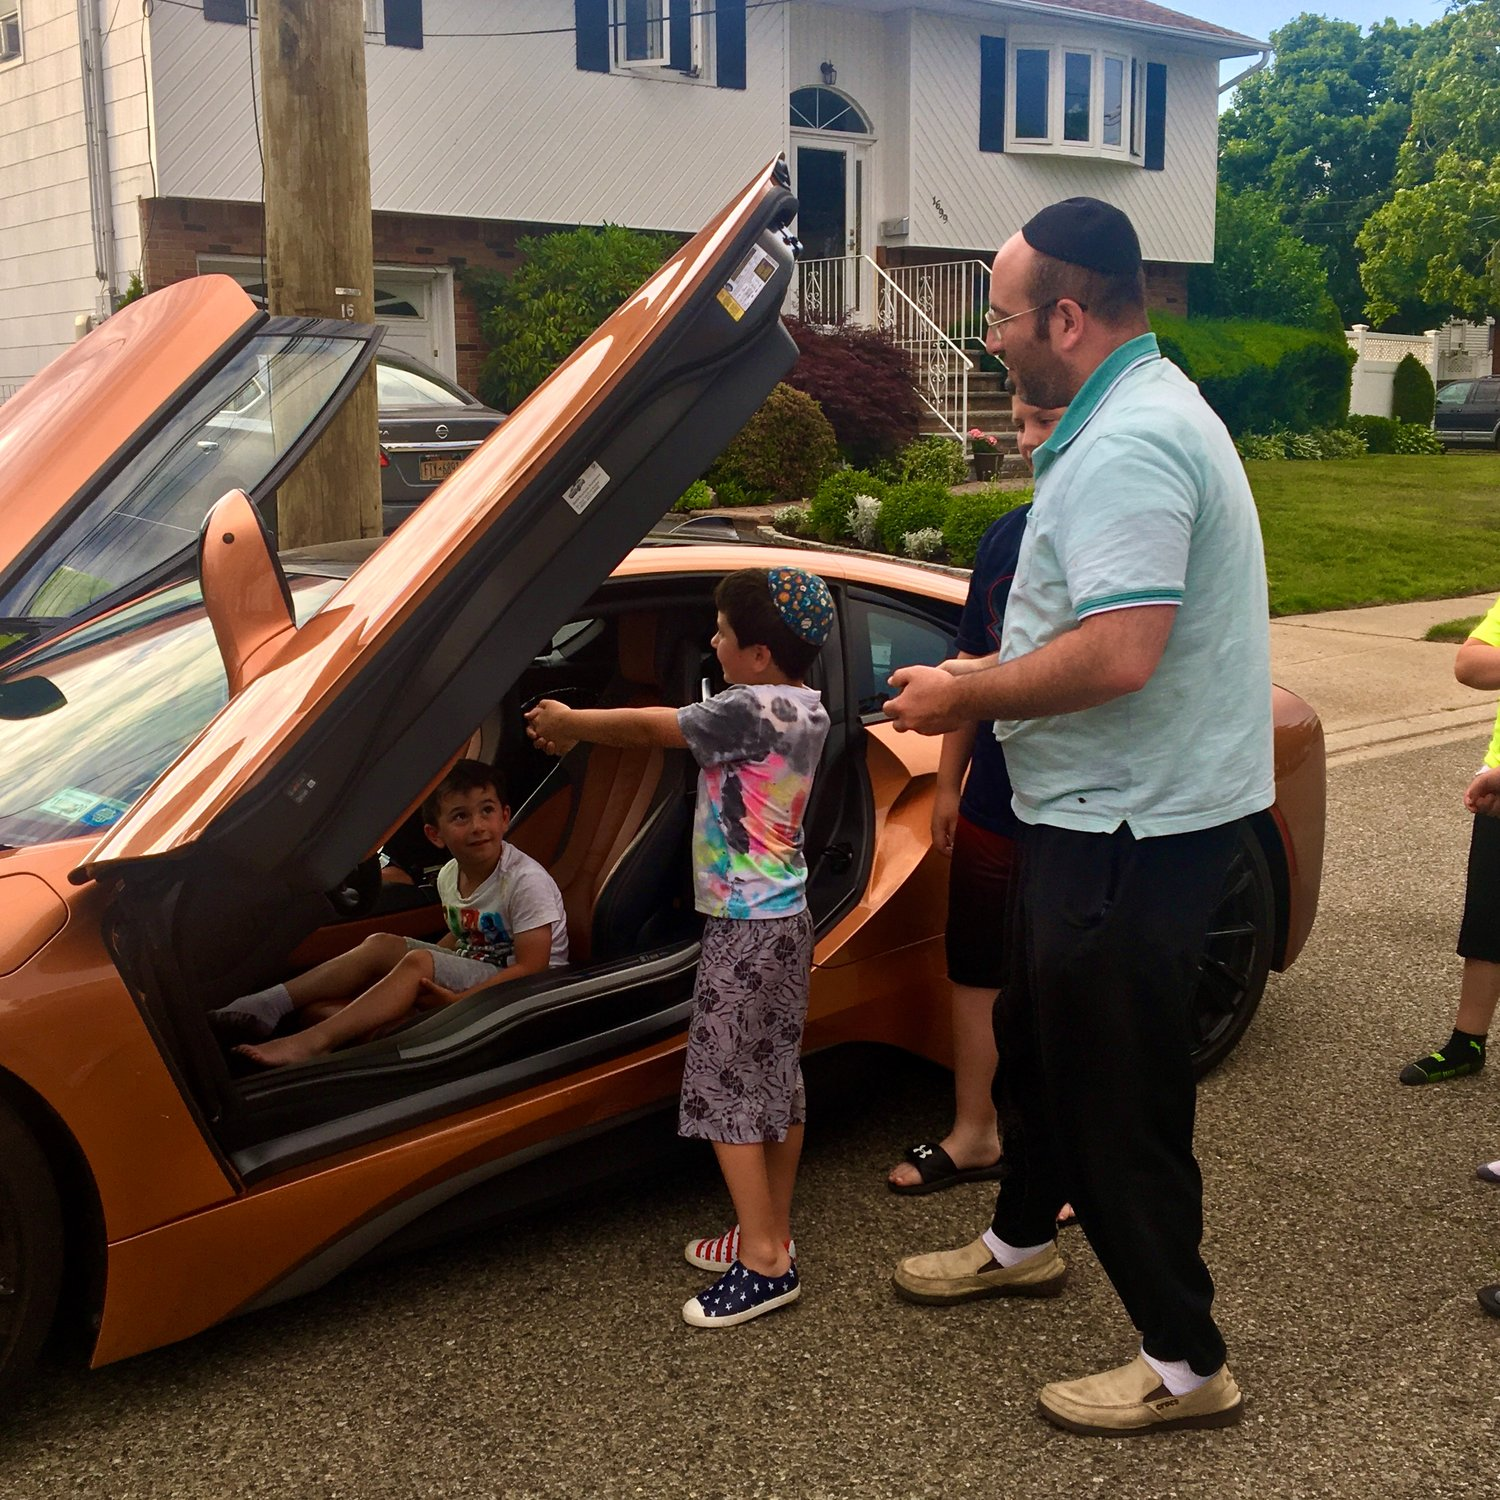 Jeremy, center, and his brother Yehuda Lieb, with their father, Yaakov Portnoy, took turns riding in a rust-colored BMW i8, a plug-in hybrid sports car.